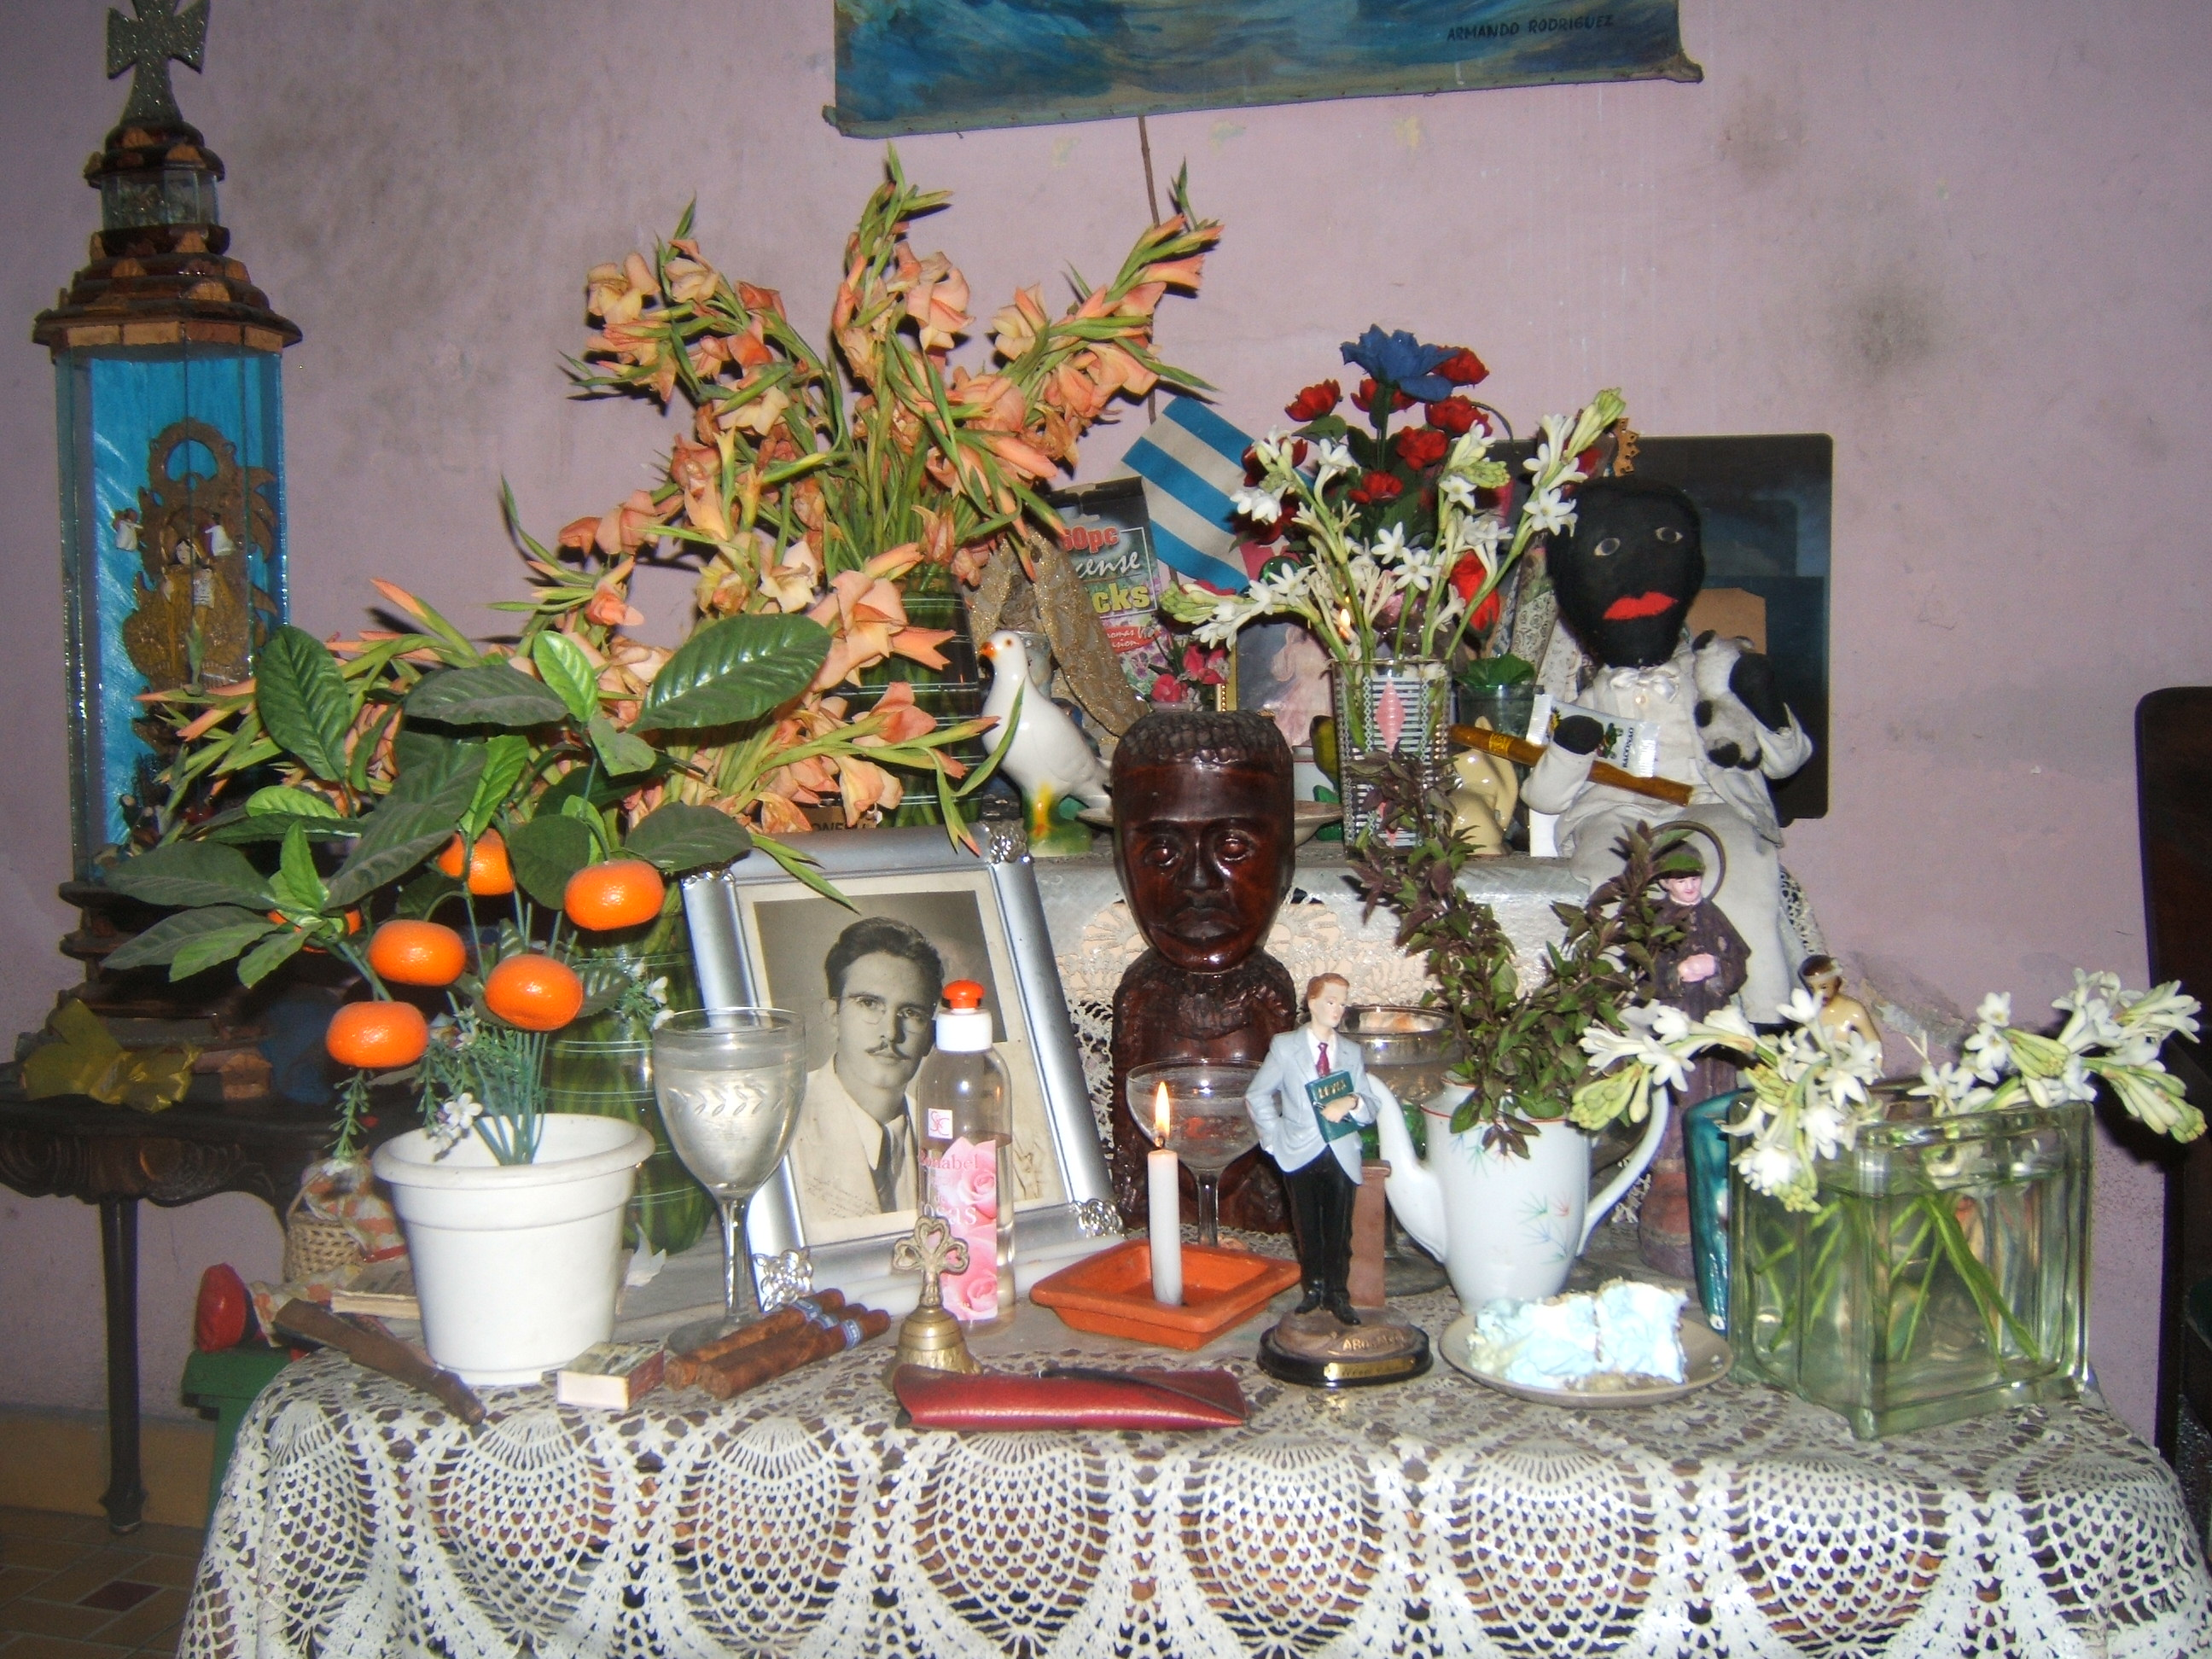 Figure 17. Mirta's bóveda prepared for a spiritual ceremony with lit candle, perfume squirt bottle, flowers, cigars, a serving of cake, and a packet of incense sticks, Santiago de Cuba, August 2008. Photograph by author.